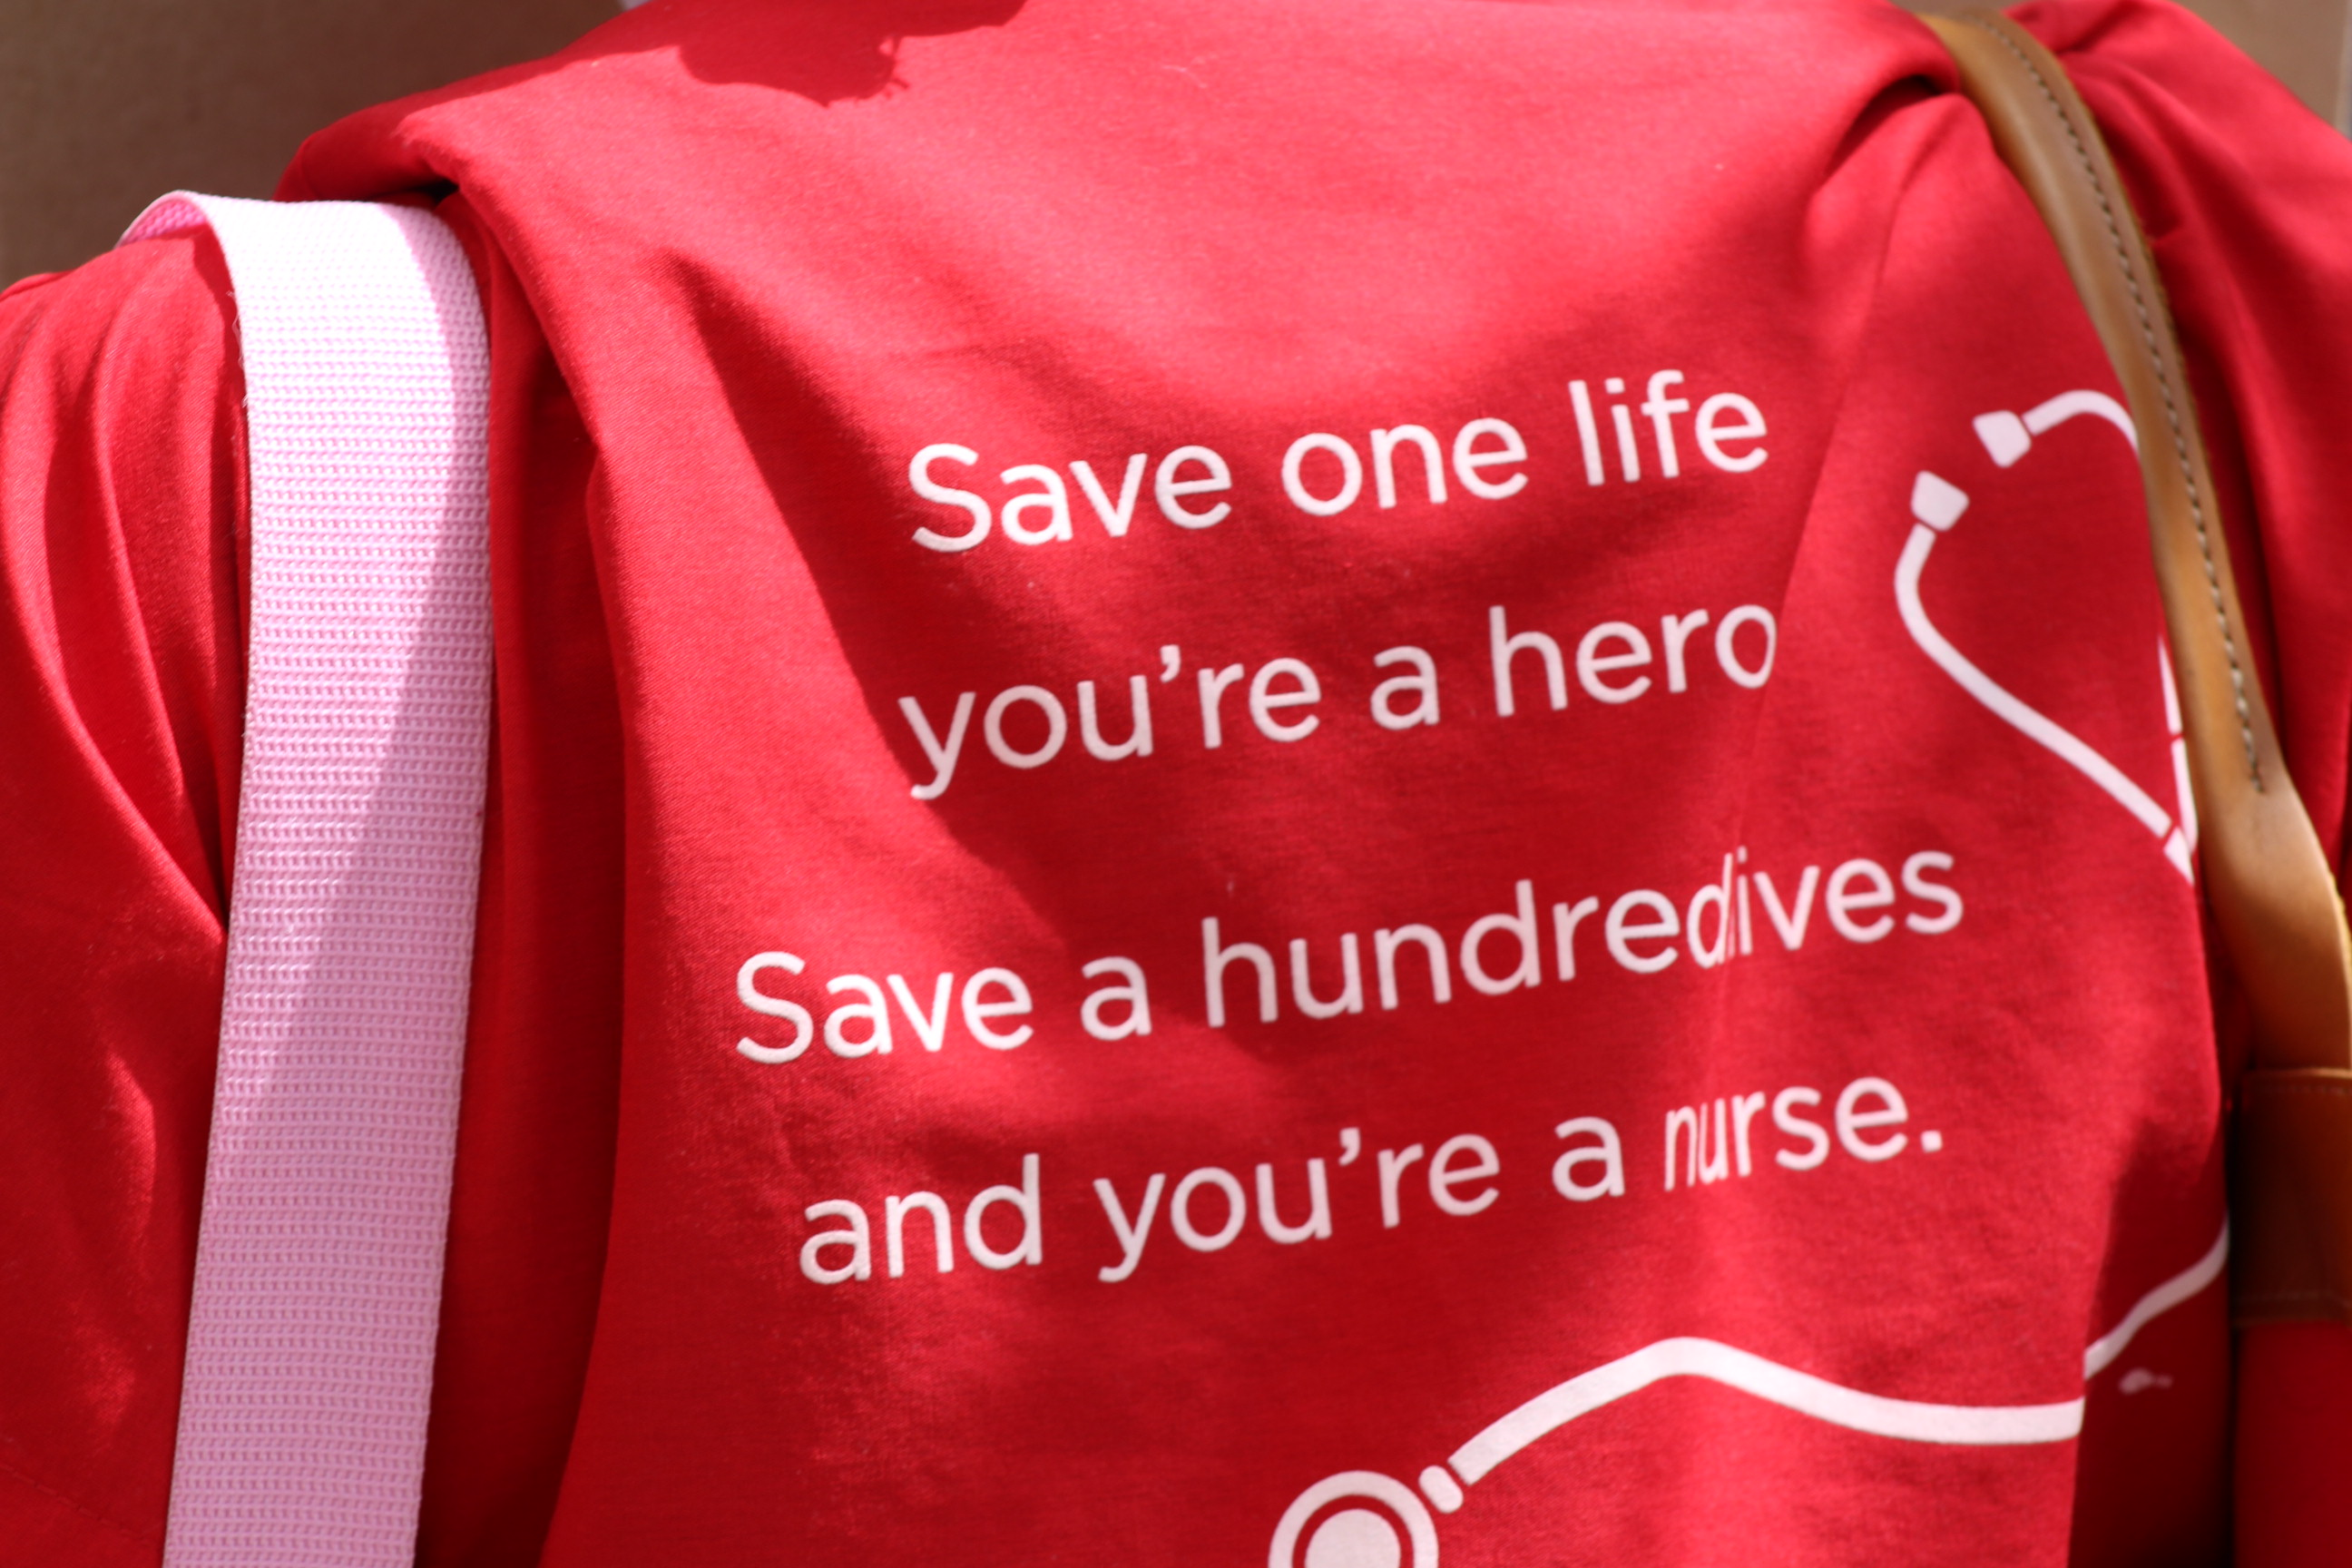 """Back of someone's shirt reading, """"Save one life, you're a hero. Save a hundred lives, you're a nurse"""" during protest on Friday April 3rd 